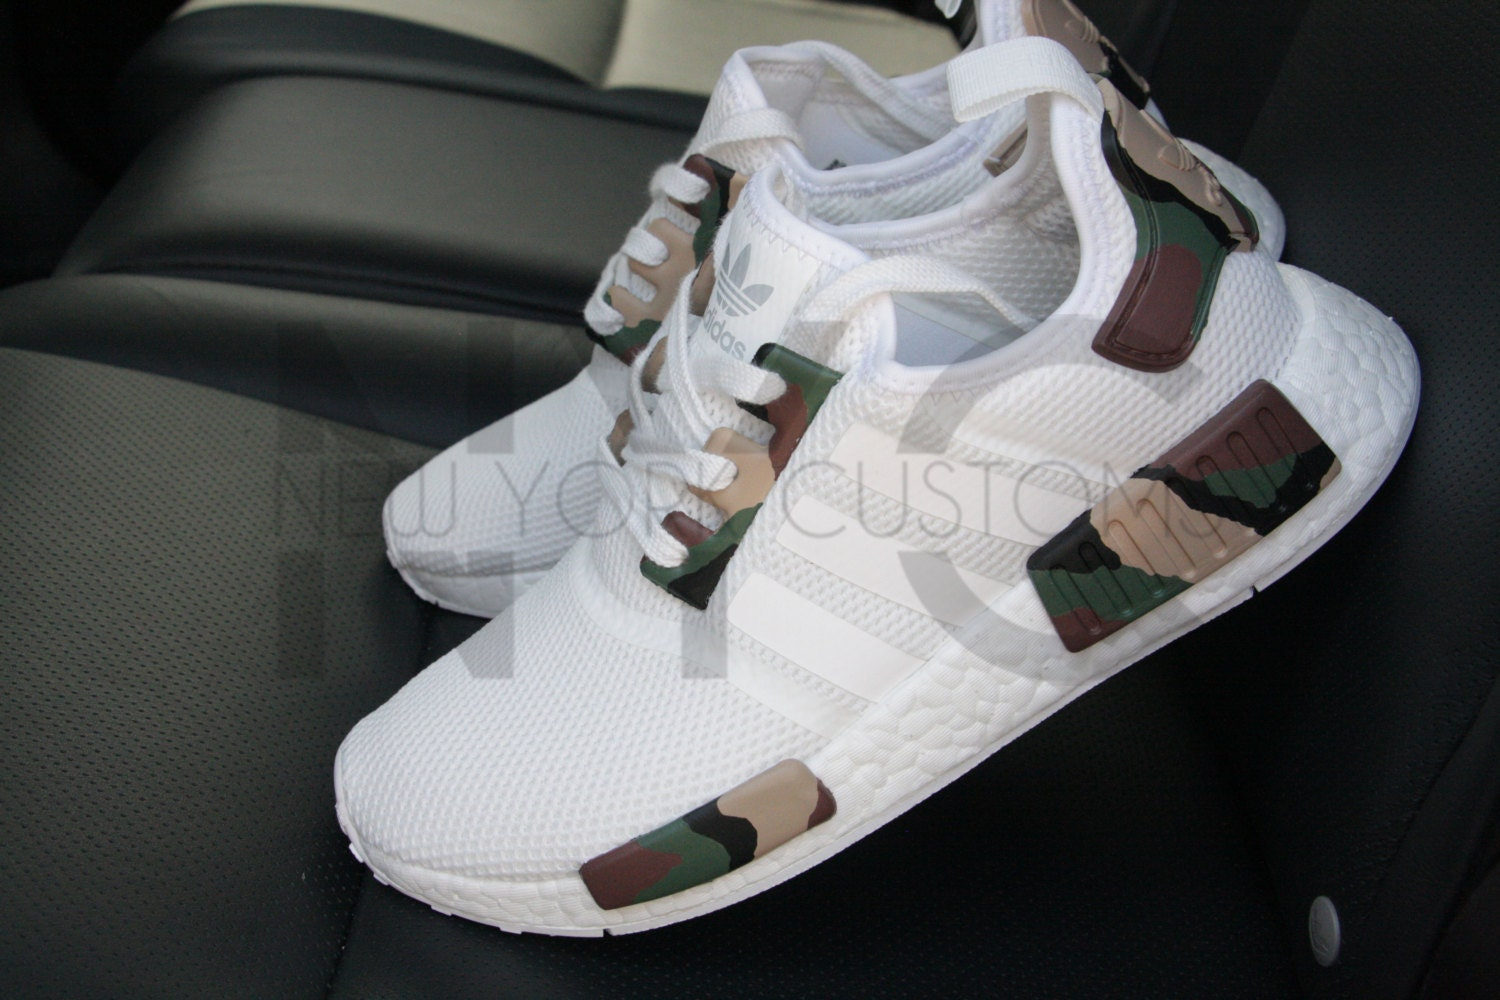 Adidas Nmd White Camouflage